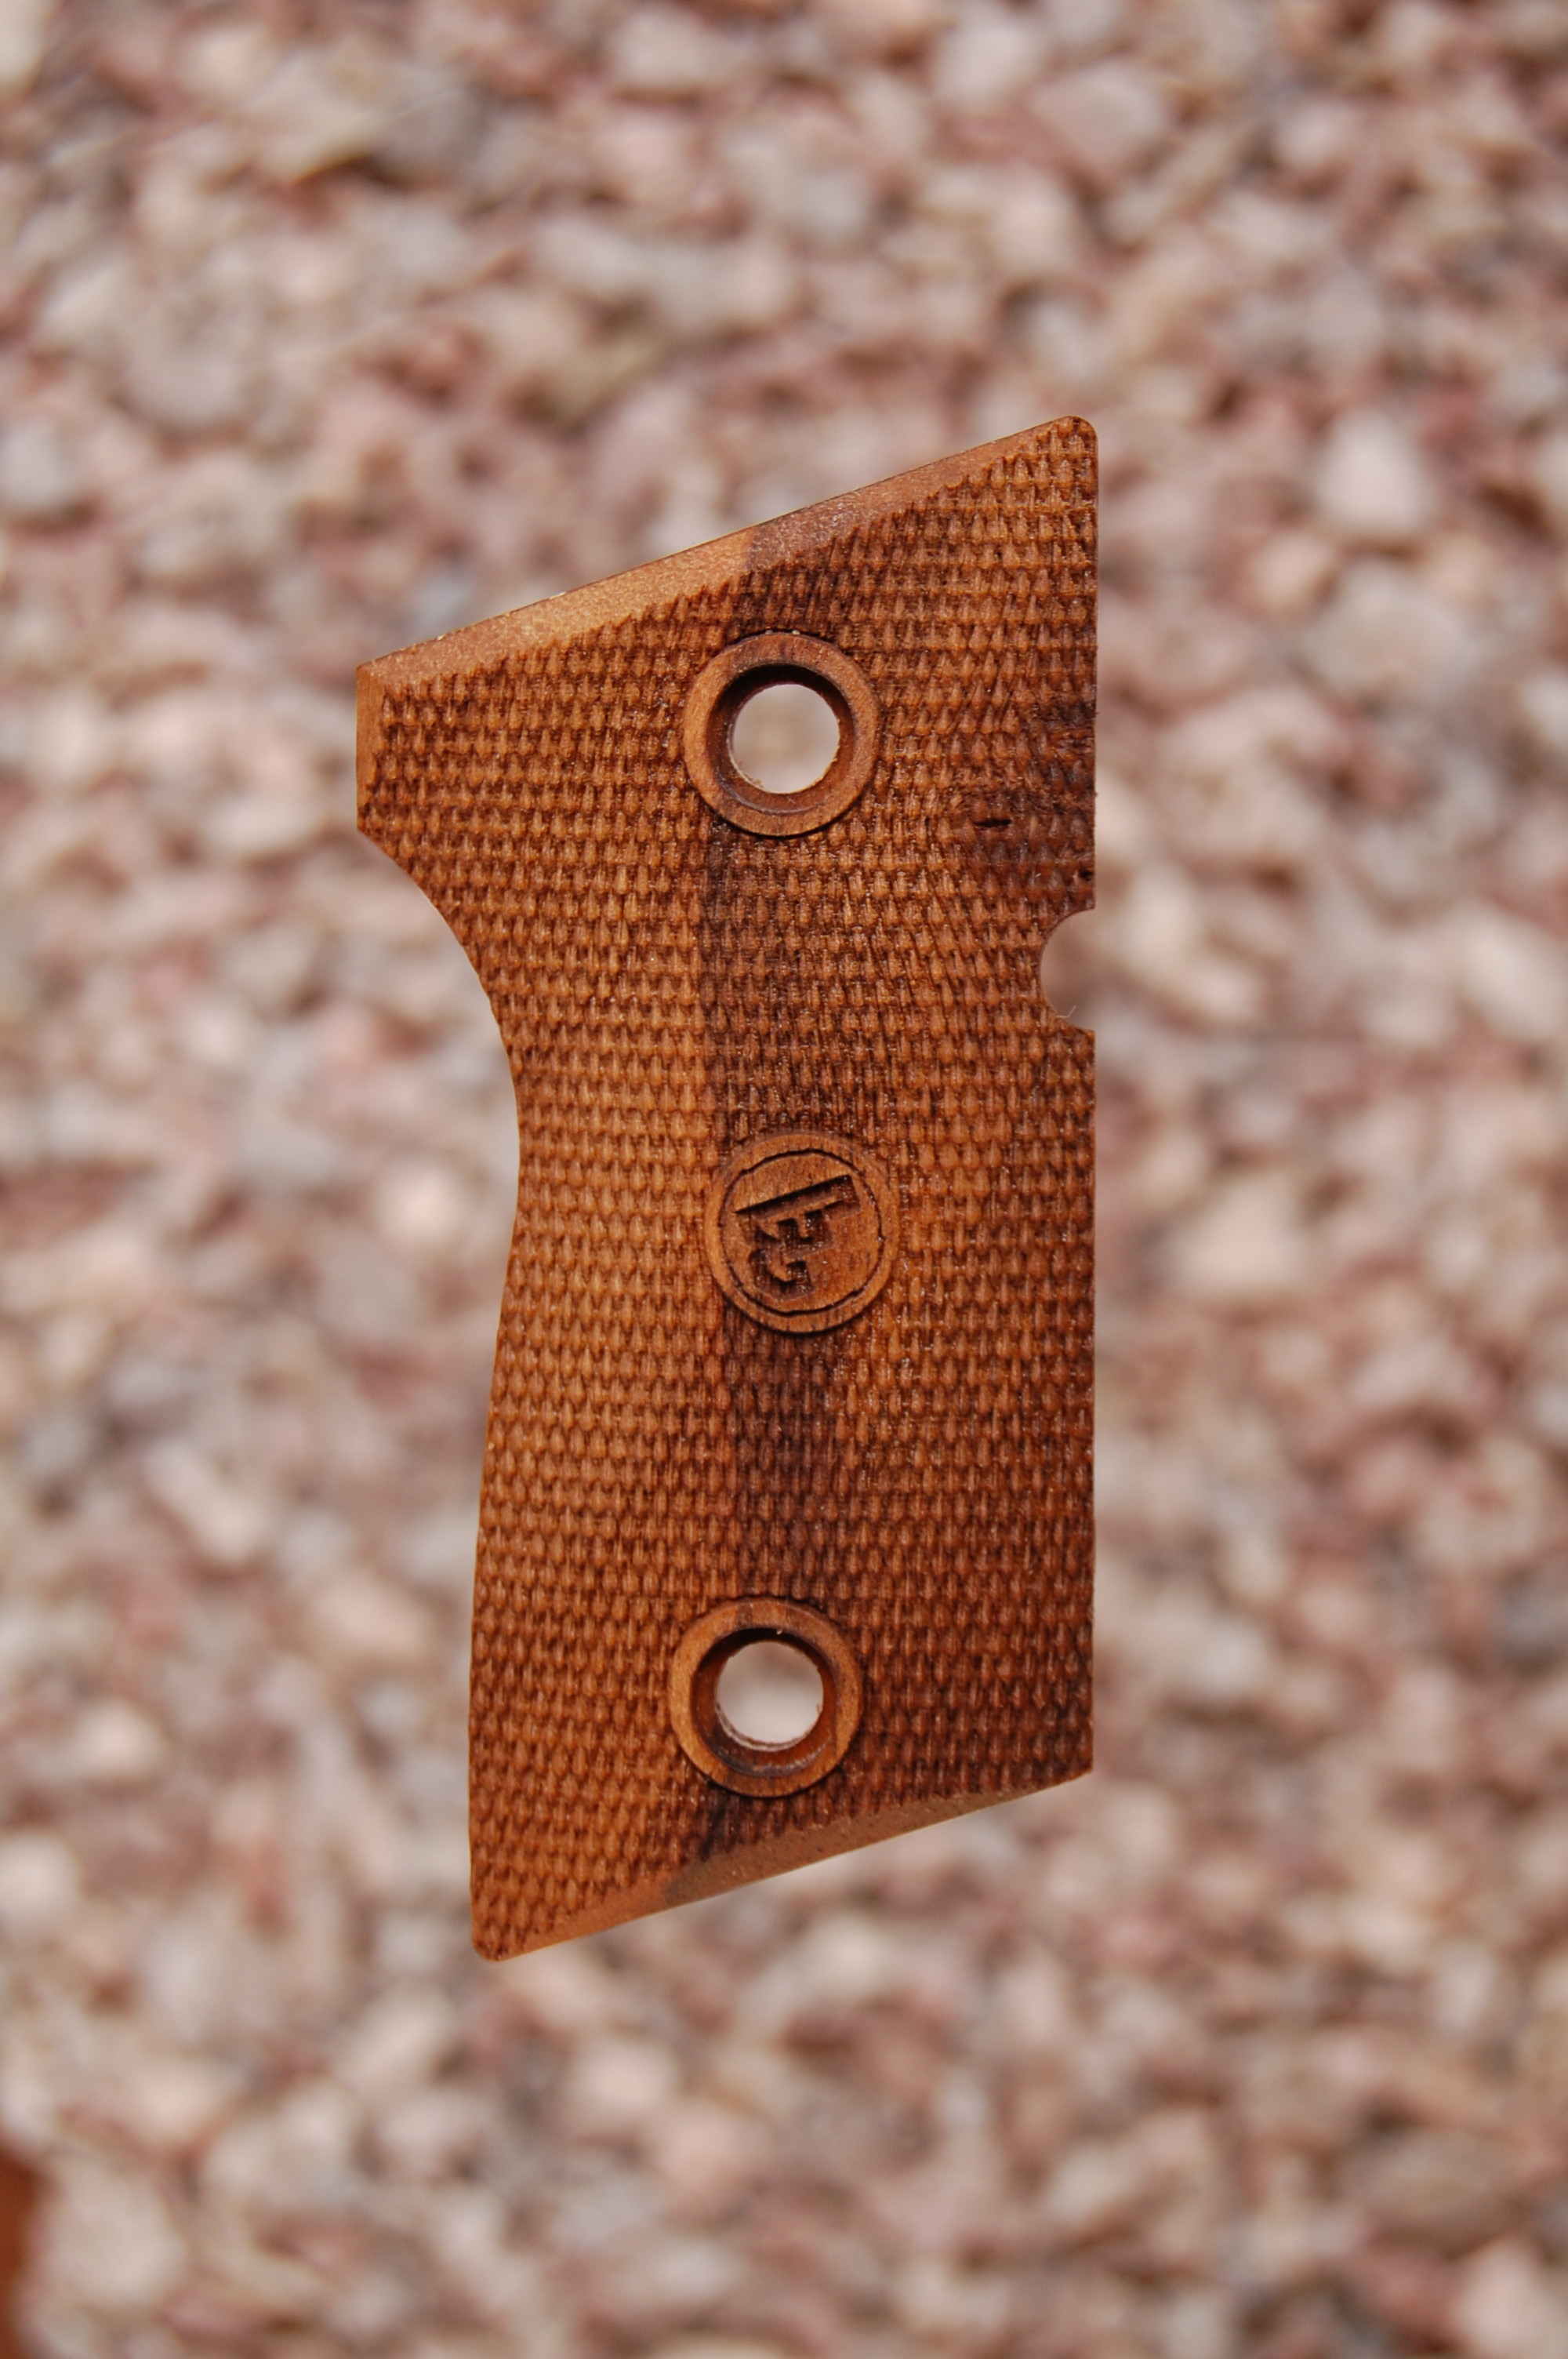 CZ 2075 RAMI grips (fully checkered) - full size